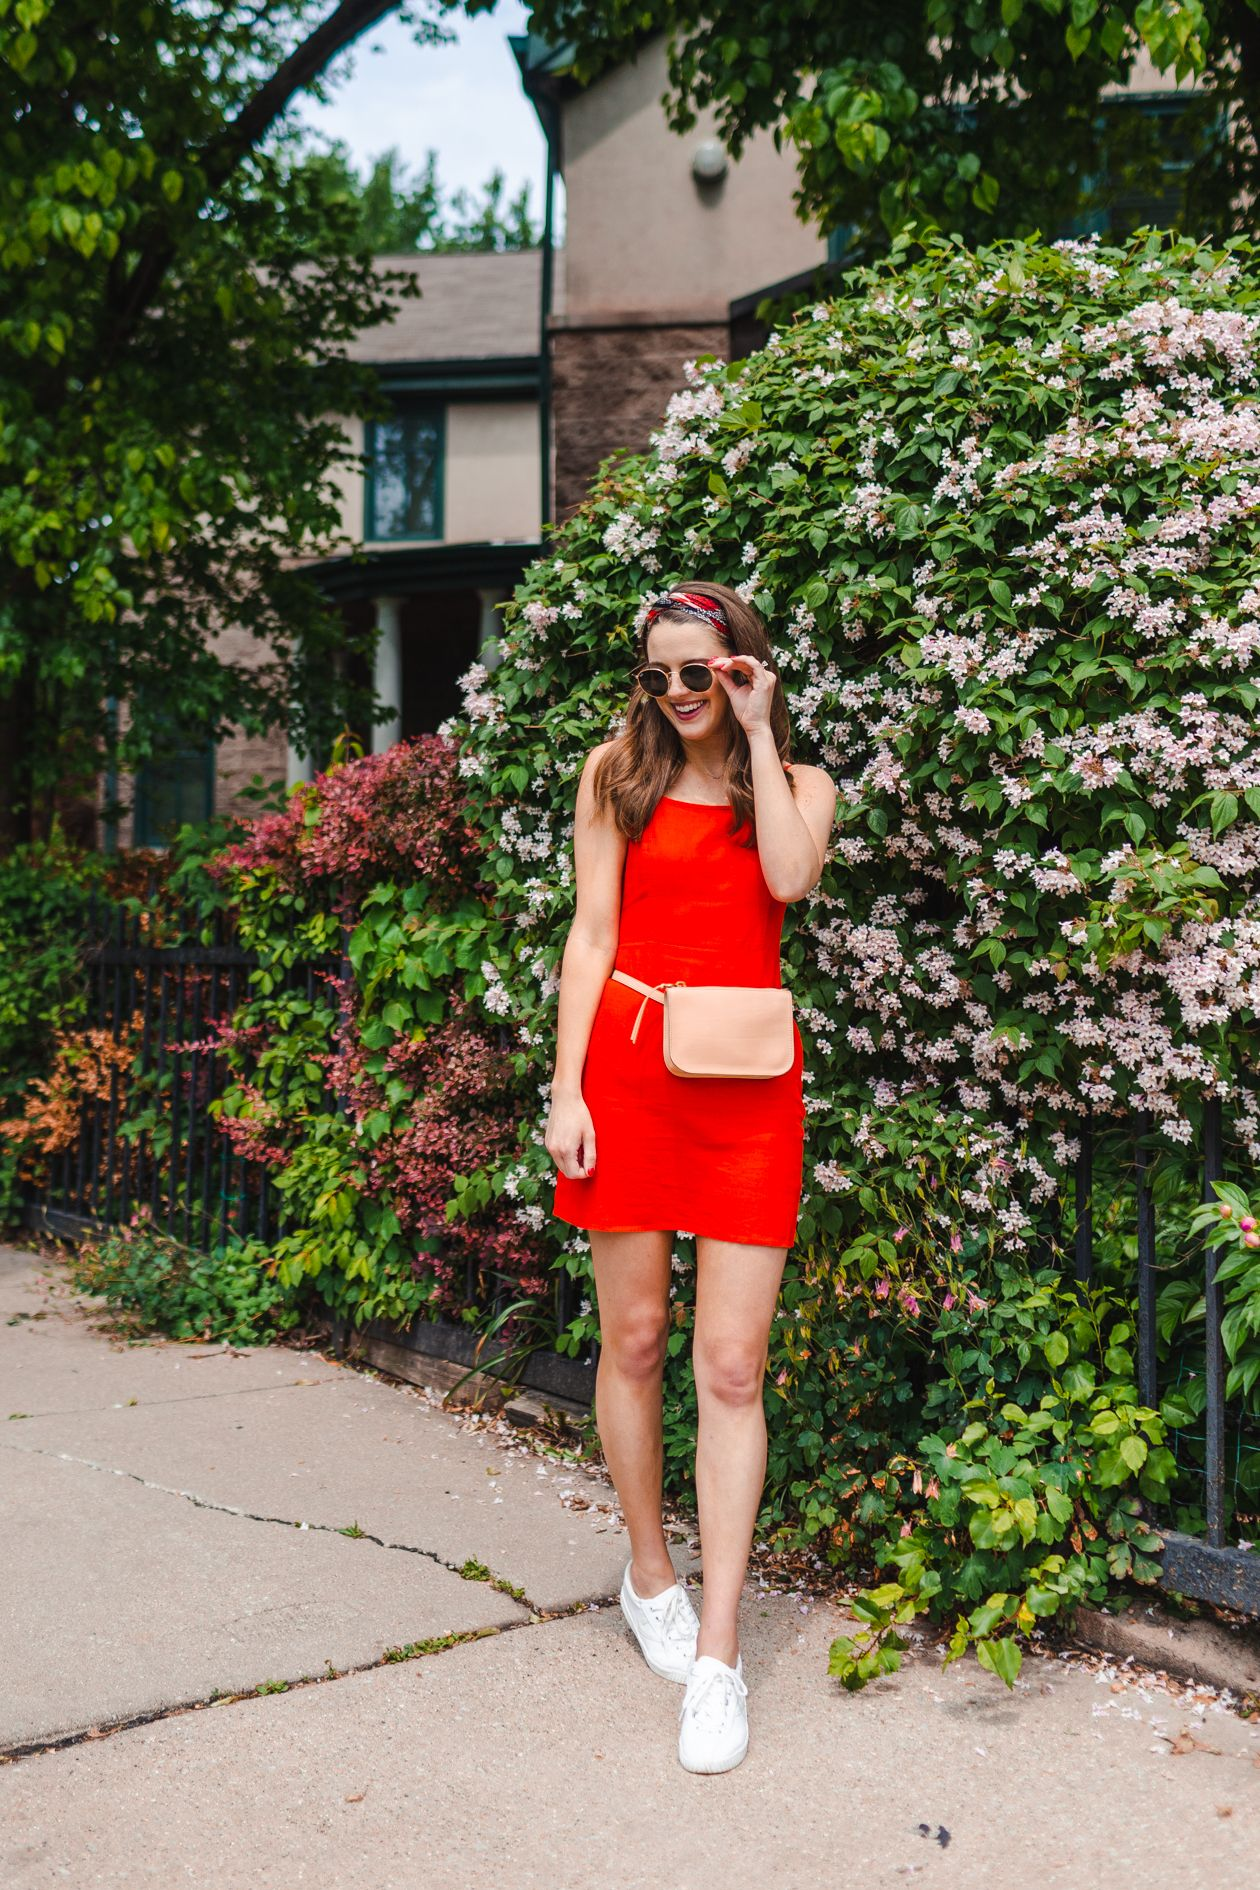 How To Style A Little Red Dress 3 Ways For Summer Little Red Dress Red Dress Vegas Dresses [ 1890 x 1260 Pixel ]